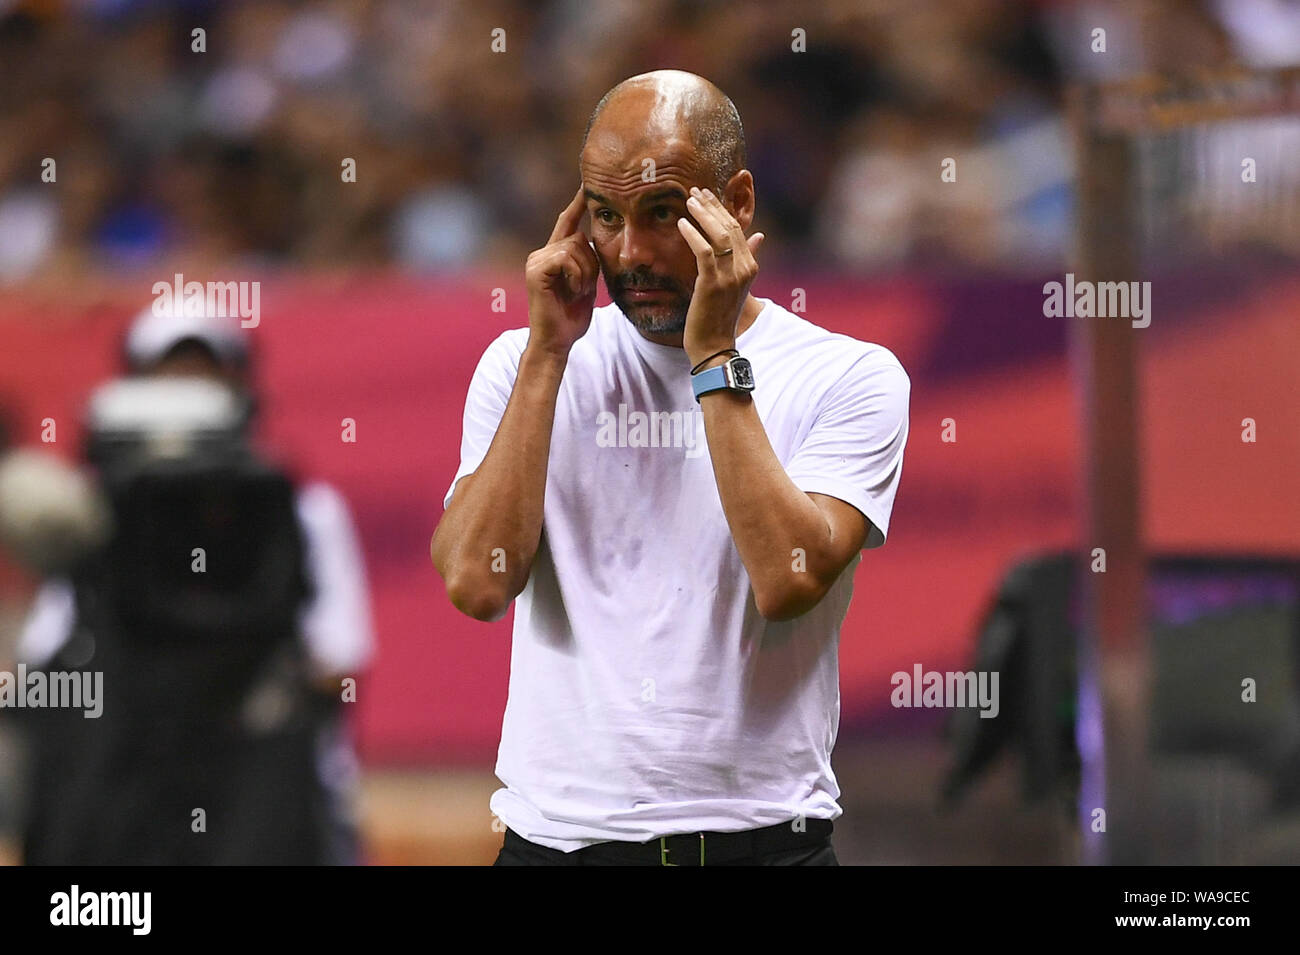 Head coach Pep Guardiola of Manchester City F.C. of English League champions shouts instructions to his players as they compete against Wolverhampton Stock Photo